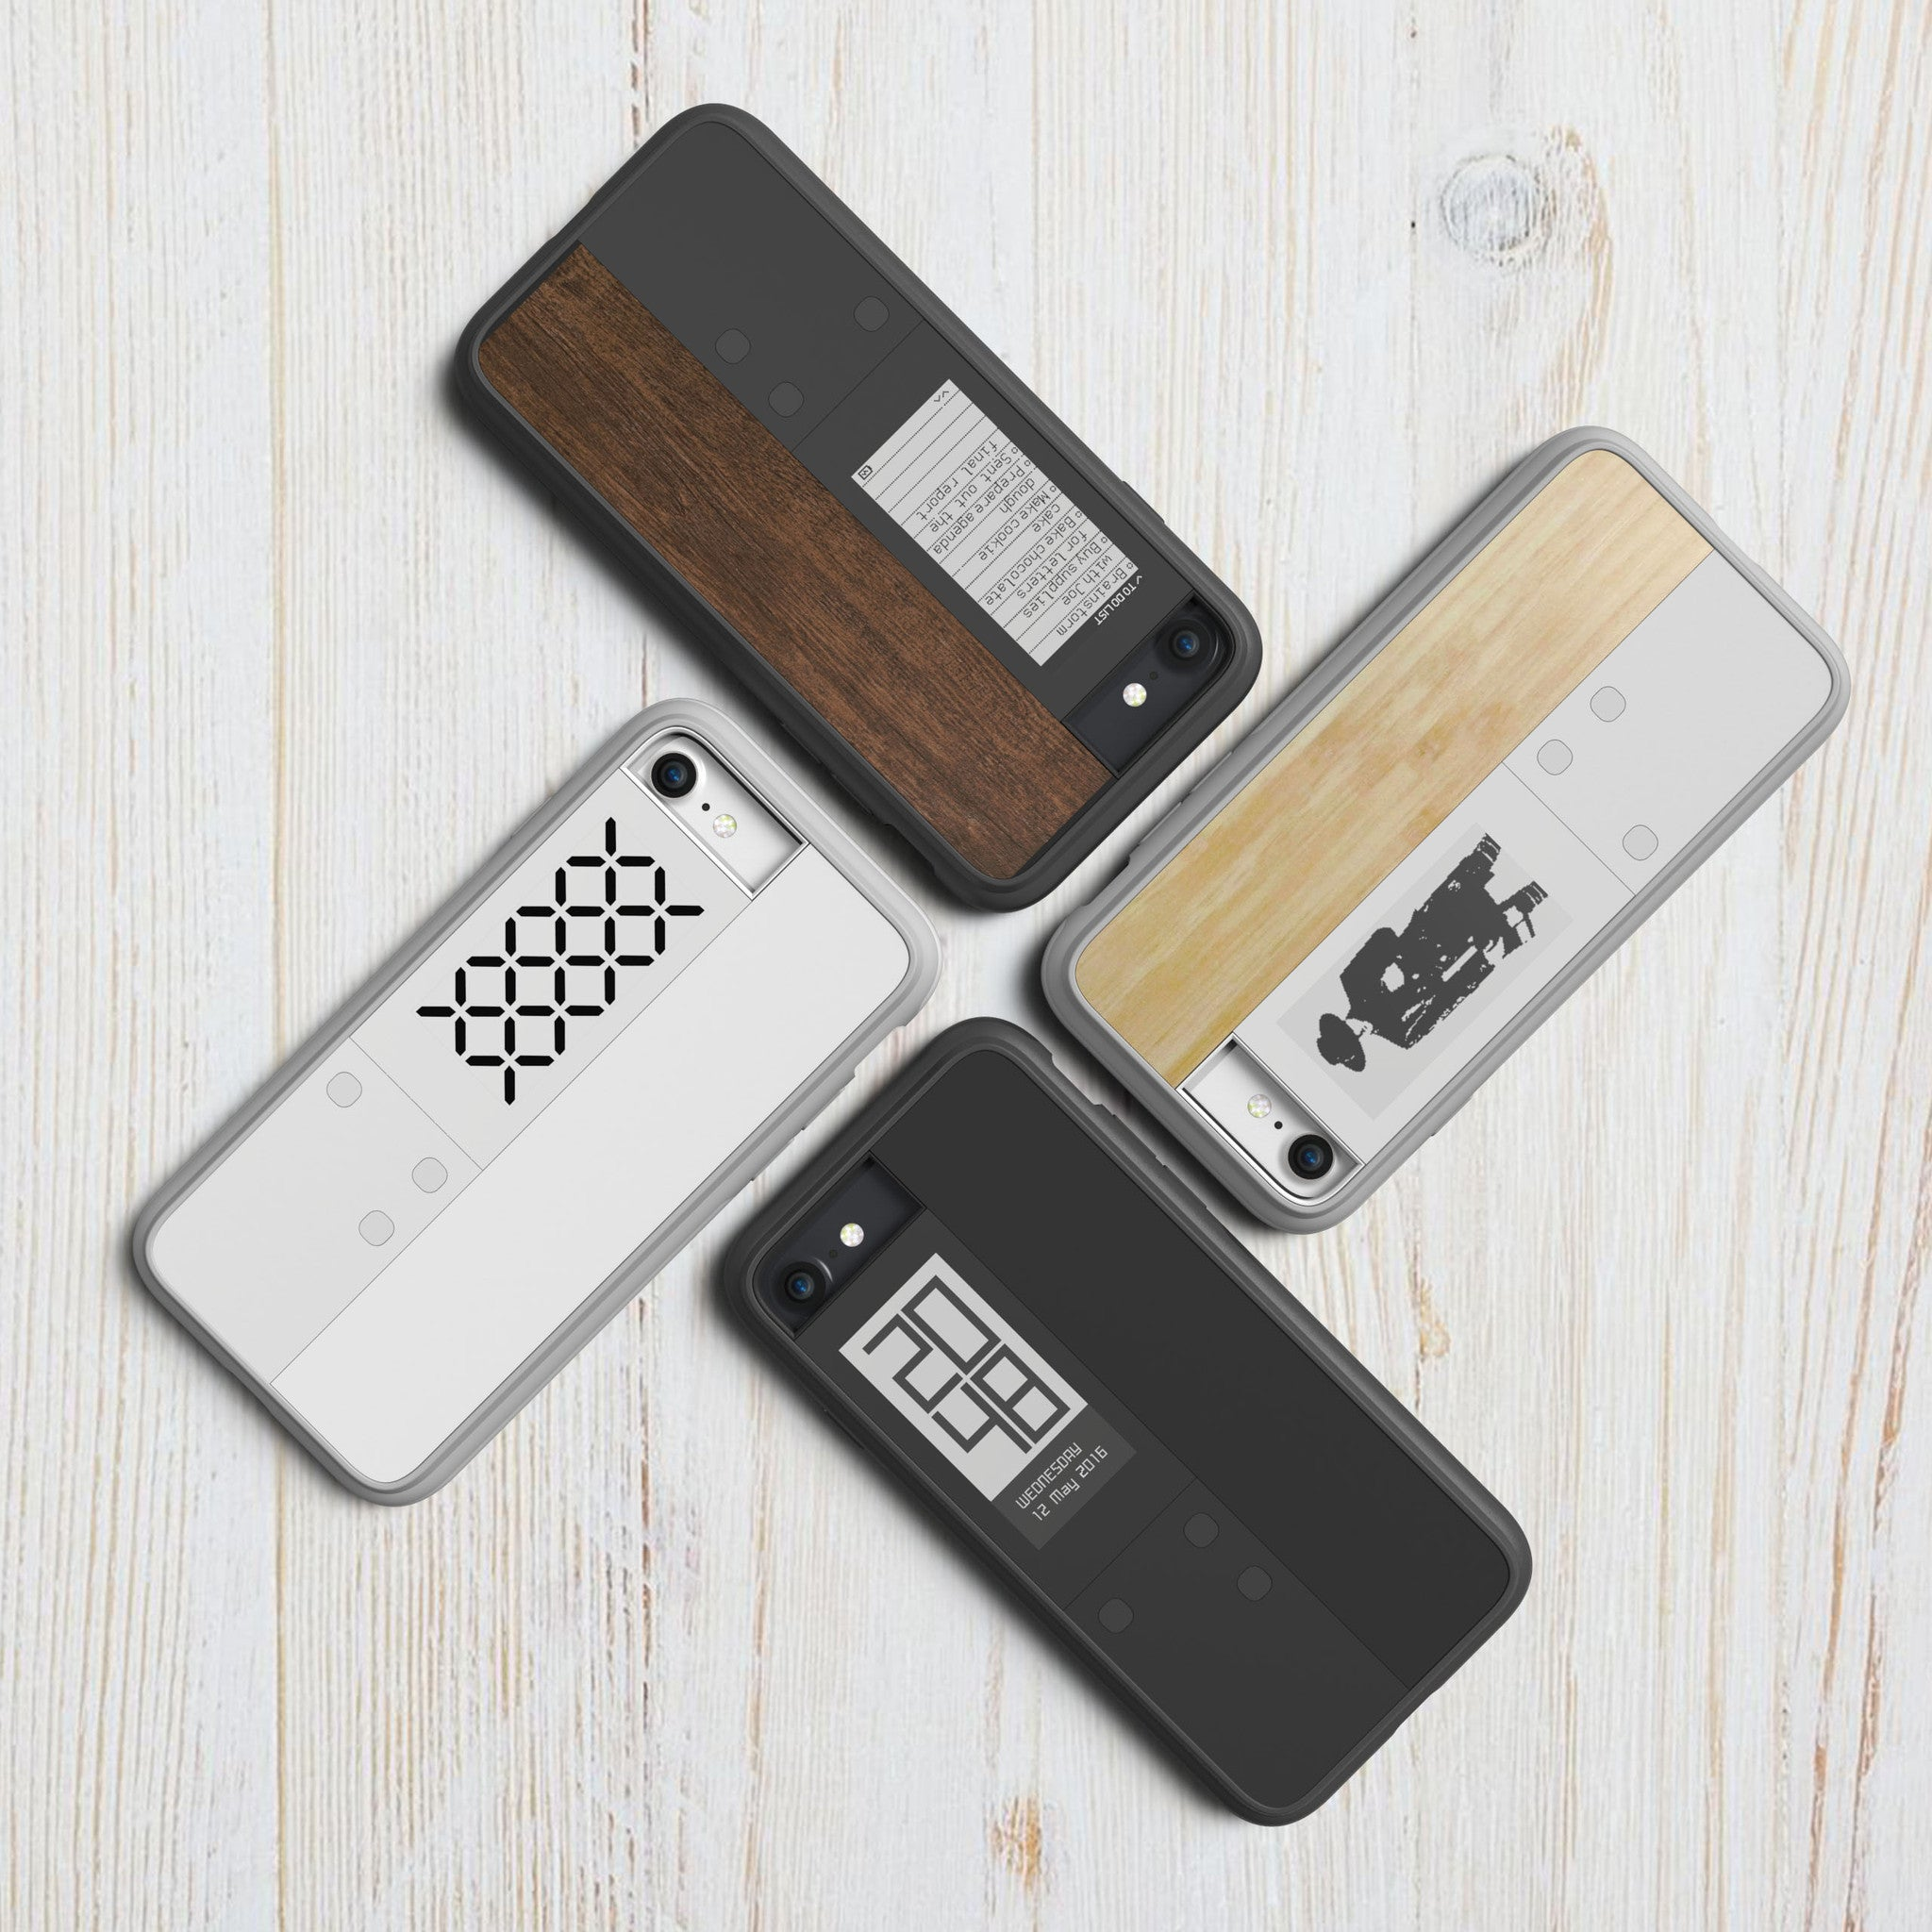 inkcase IVY in 4 different color options of black, white, maplewood and rosewood